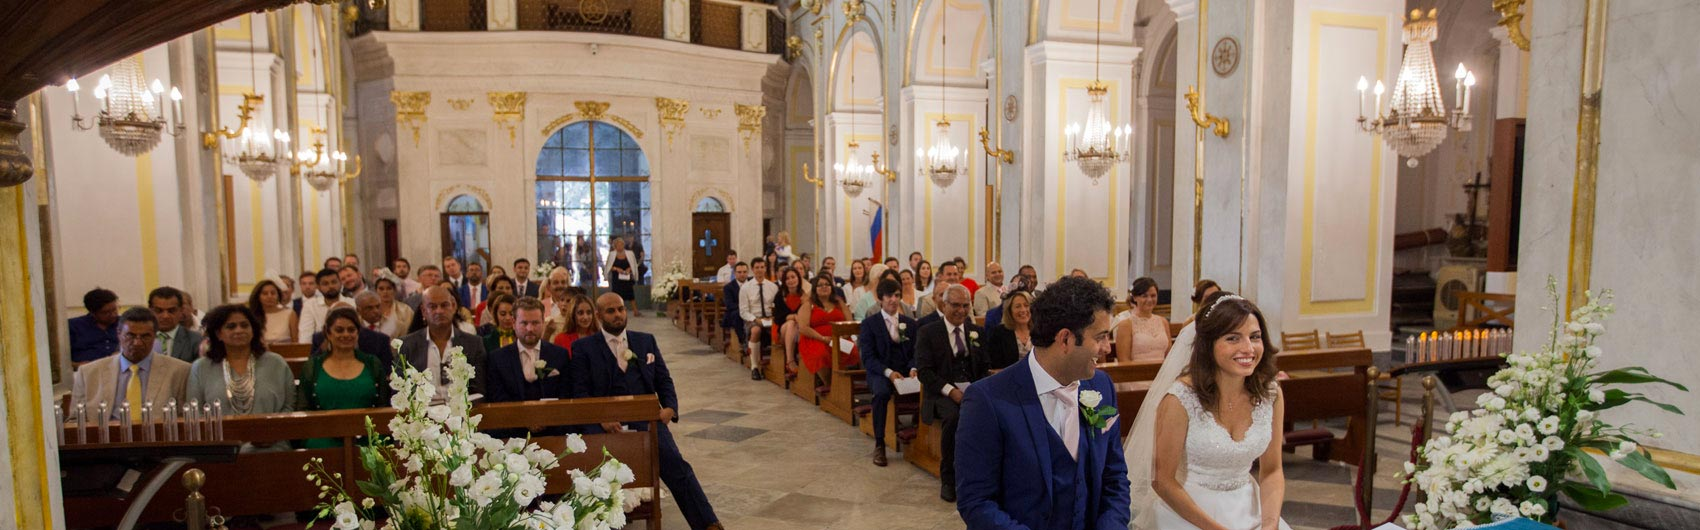 catholic-weddings-positano